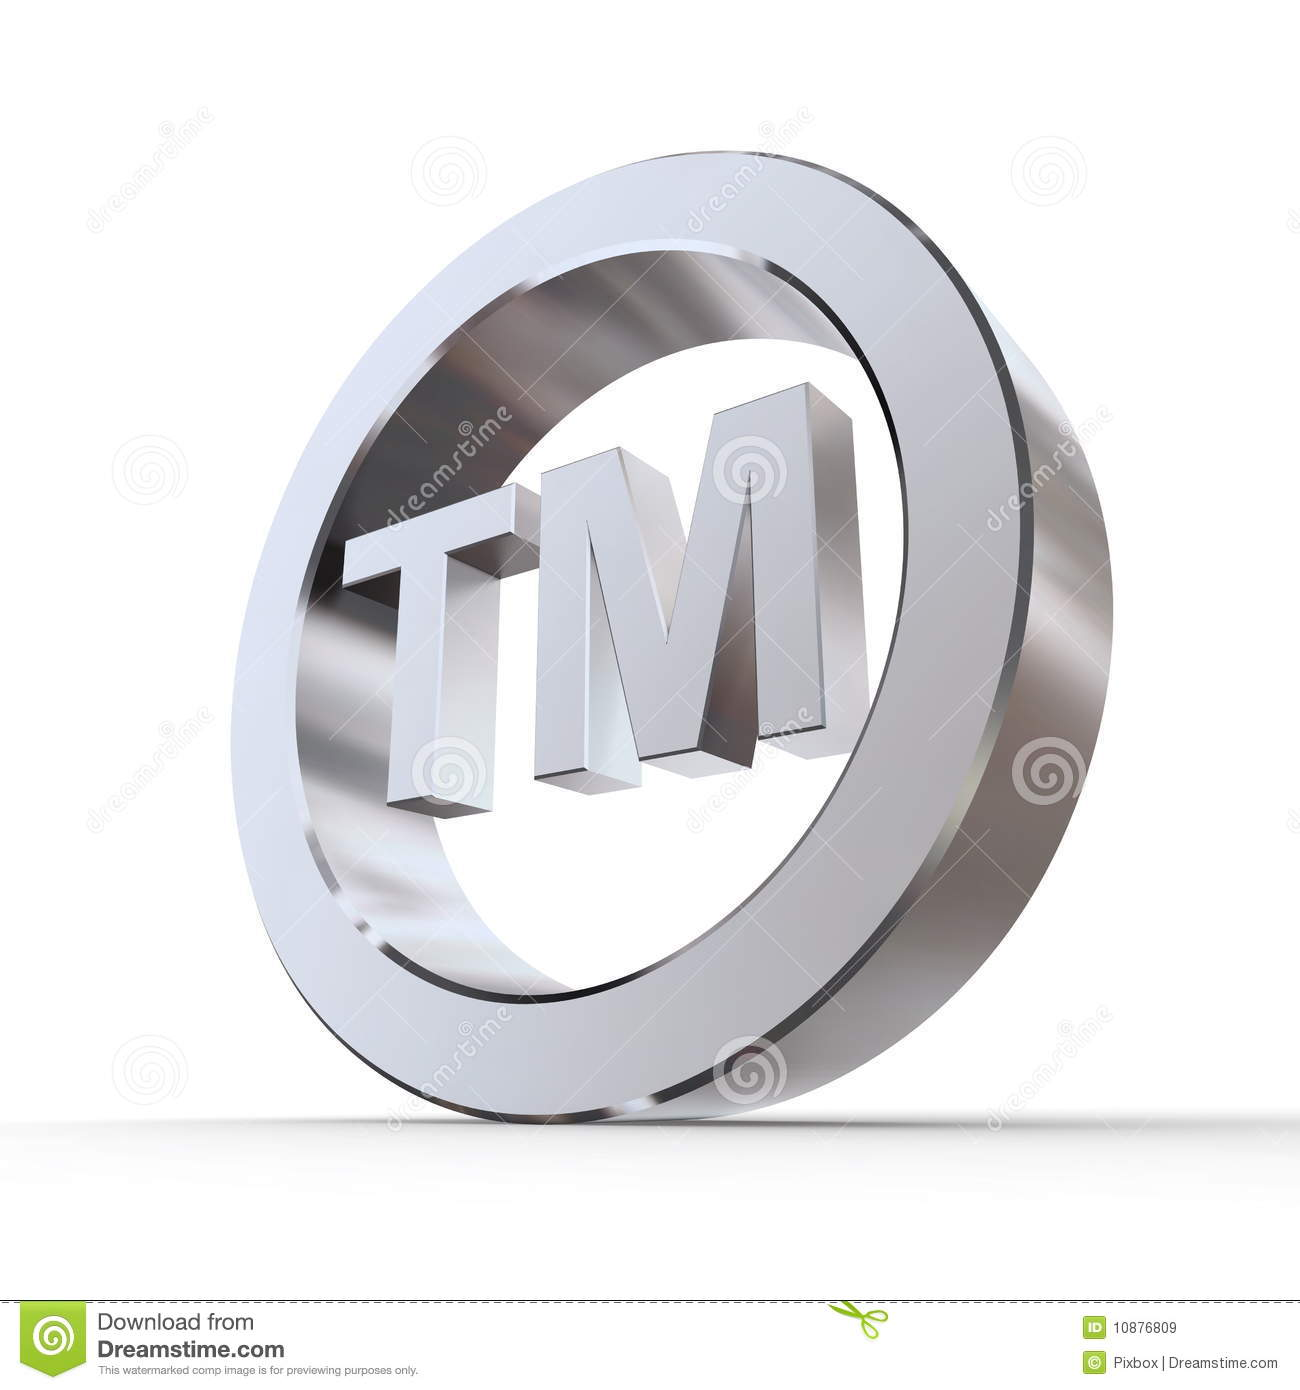 Trademark symbol choice image symbol and sign ideas shiny trademark symbol stock illustration illustration of message shiny trademark symbol buycottarizona buycottarizona